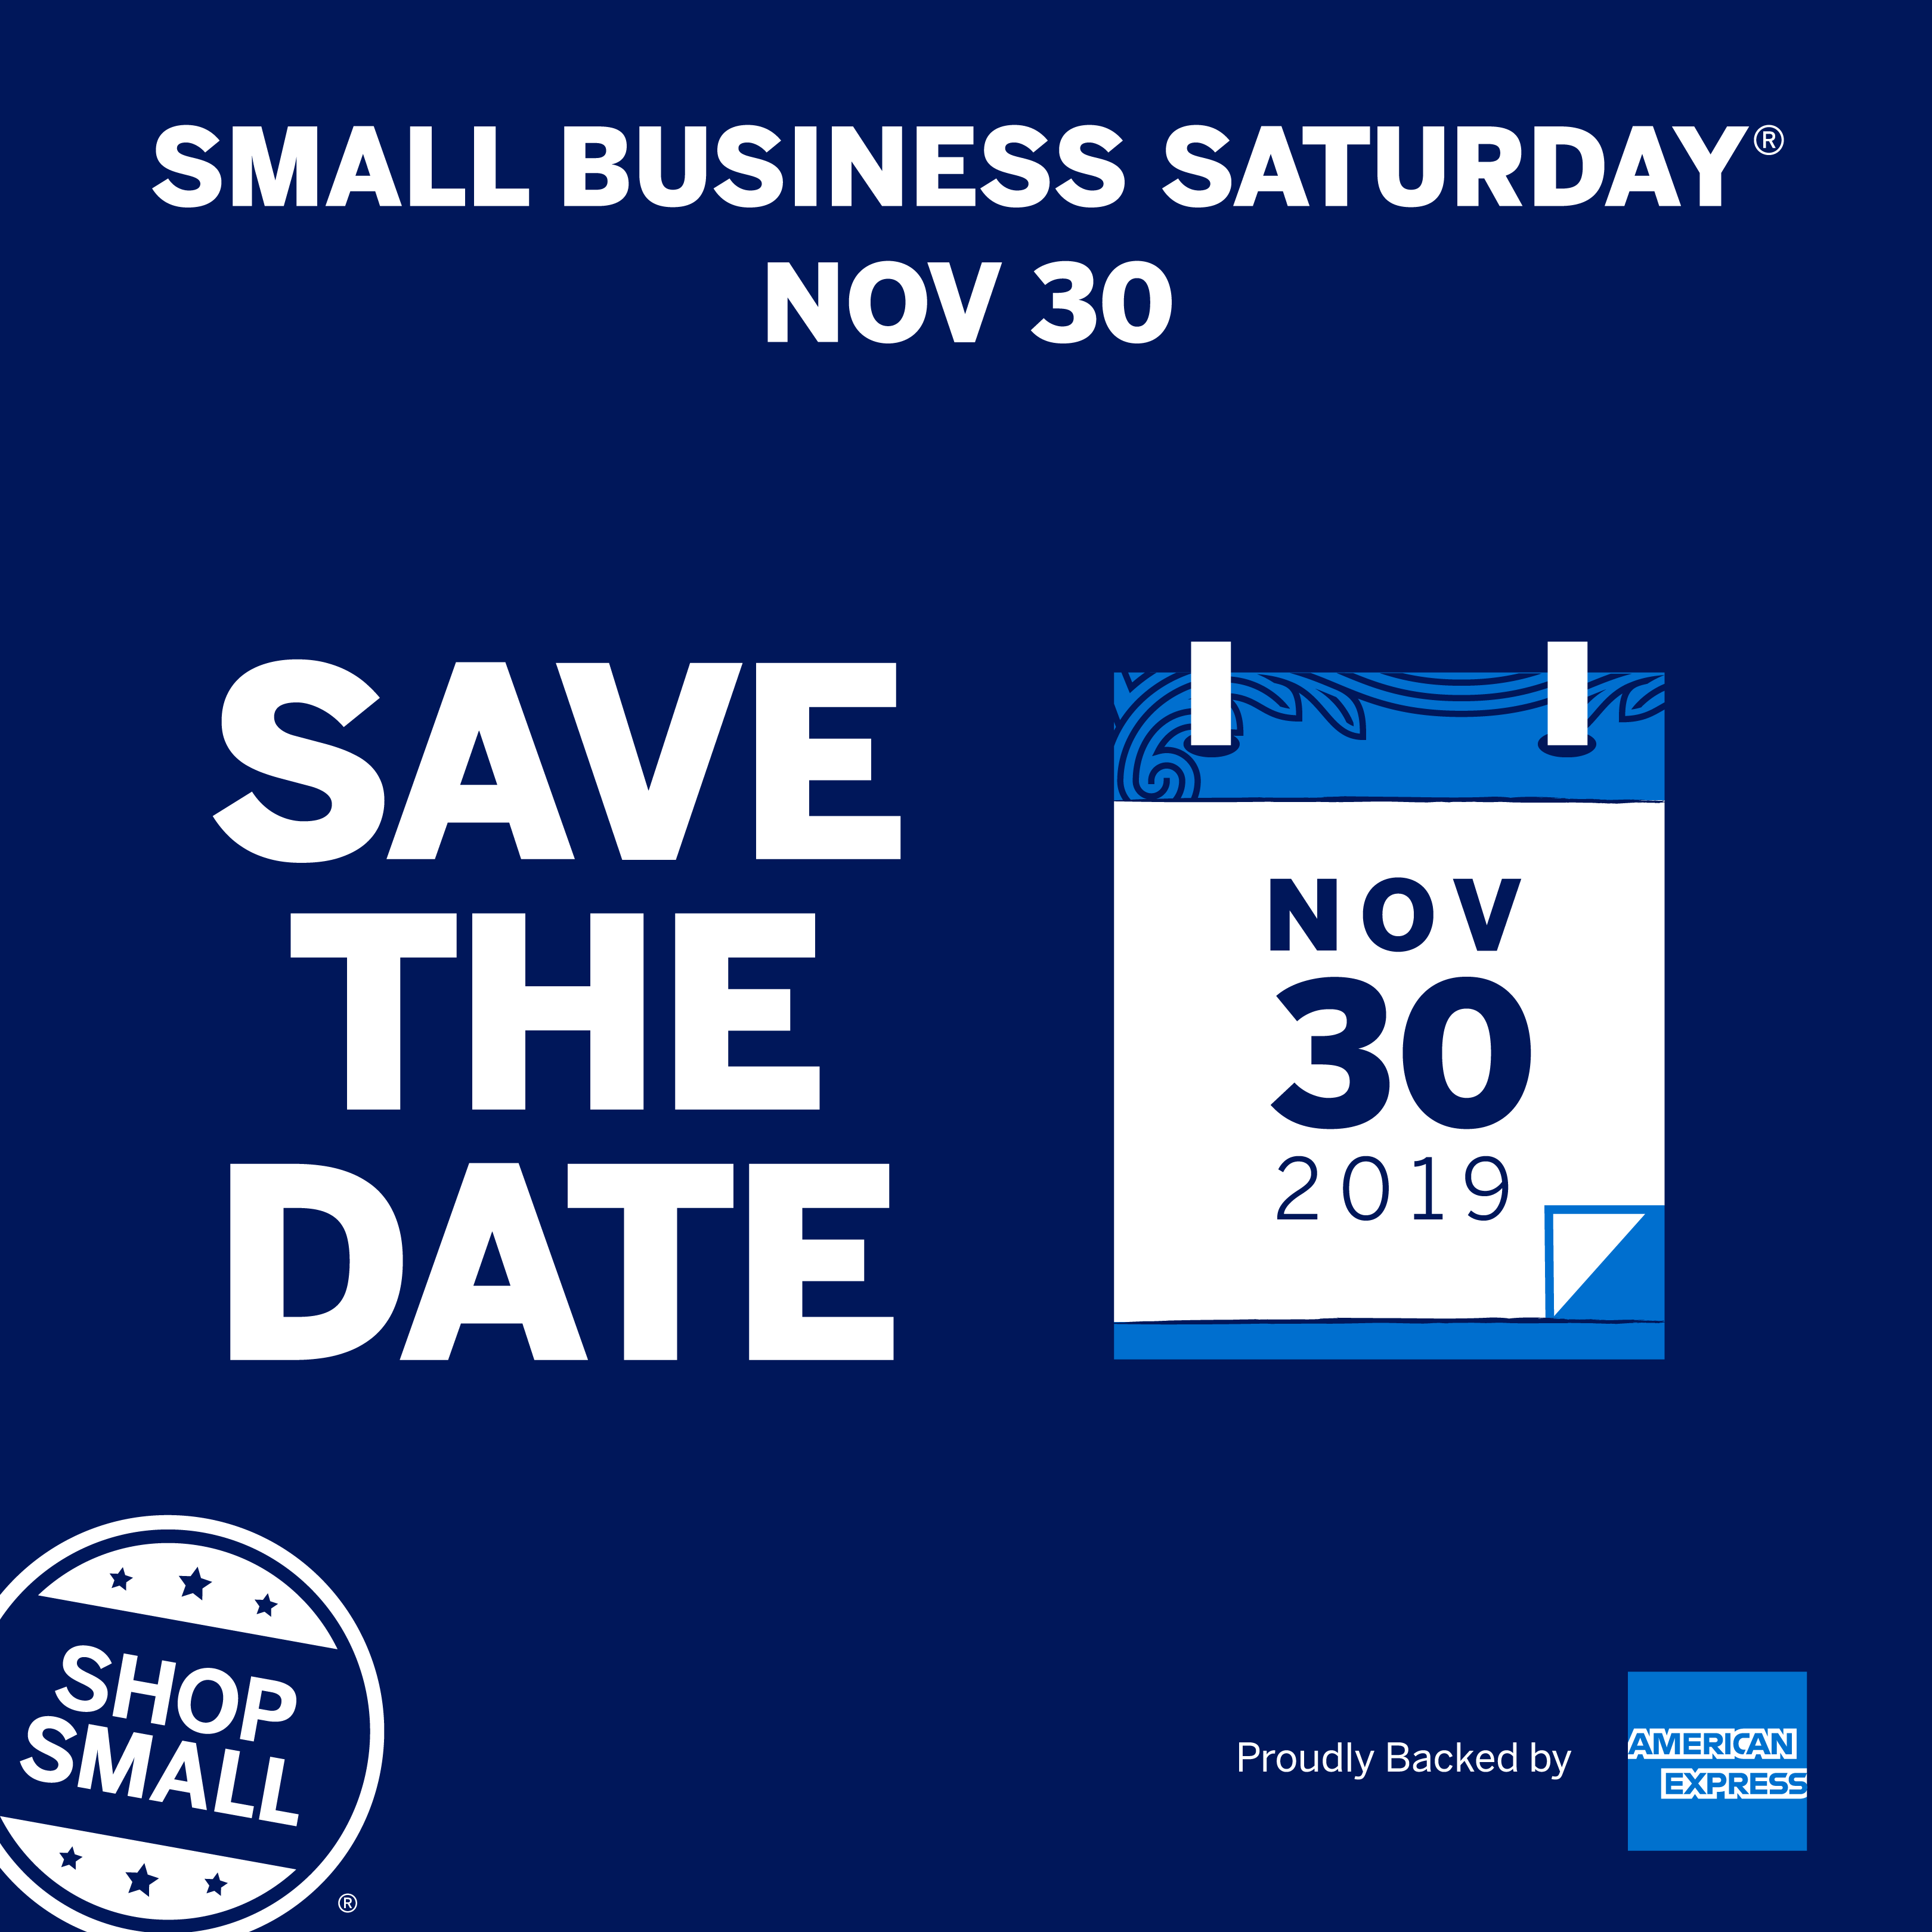 Top tips to get ready for Small Business Saturday®